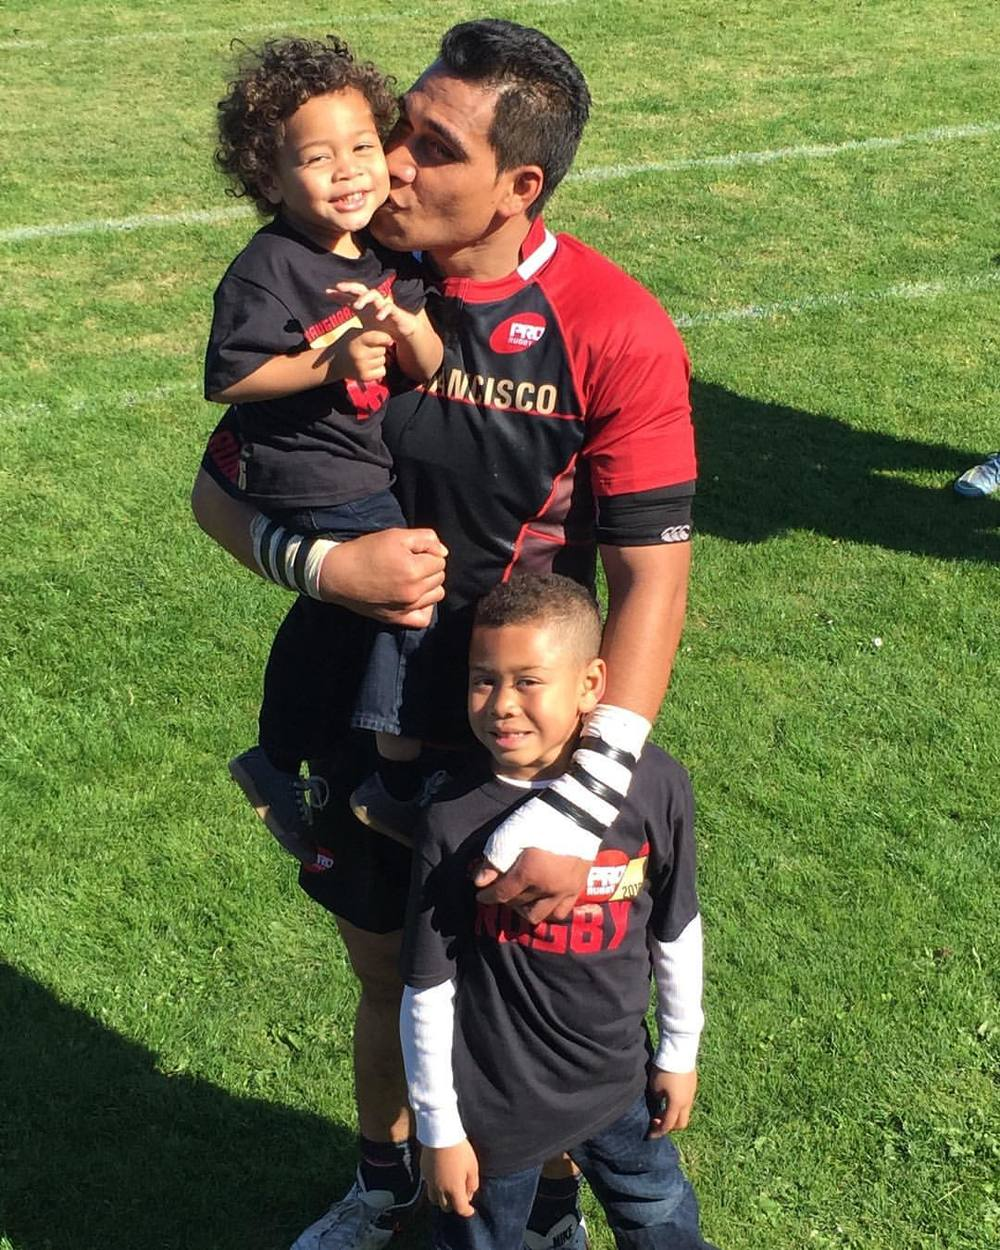 Siupeli with his two biggest fans post game.